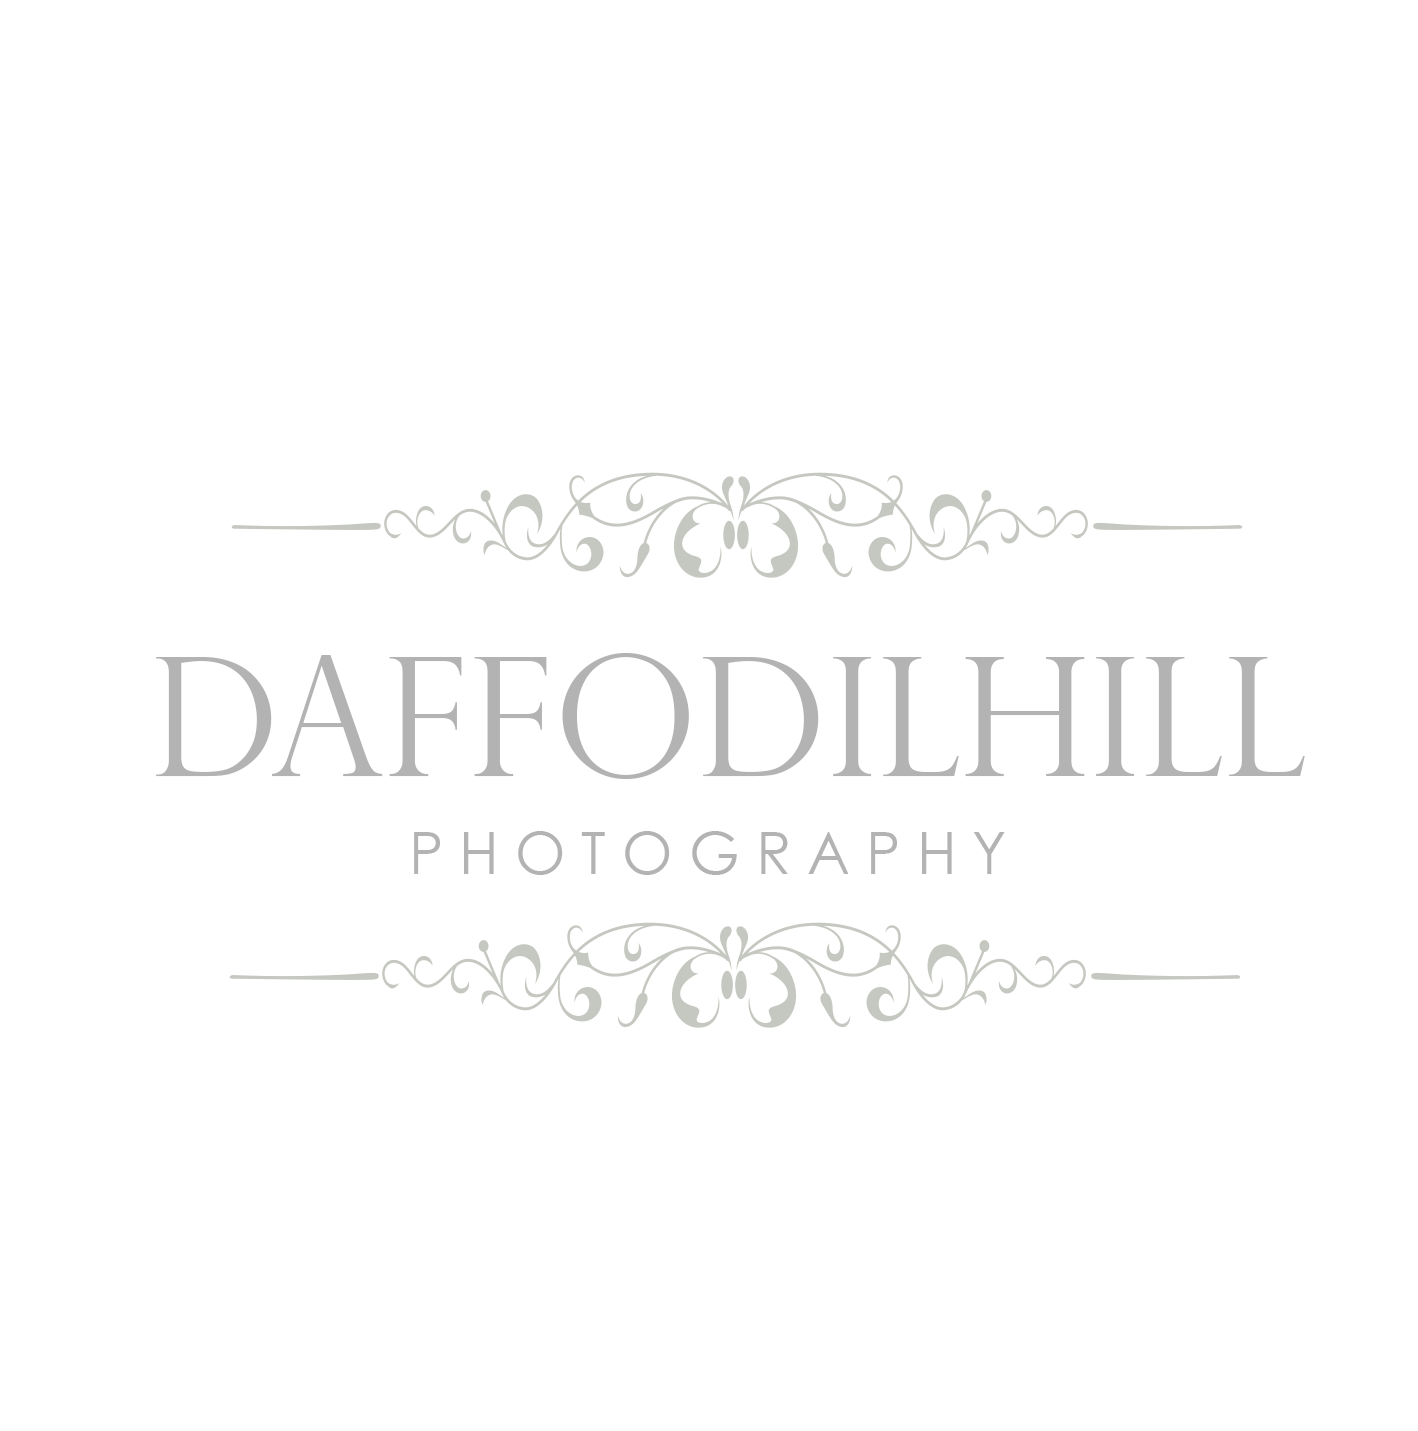 DaffodilHill Photography